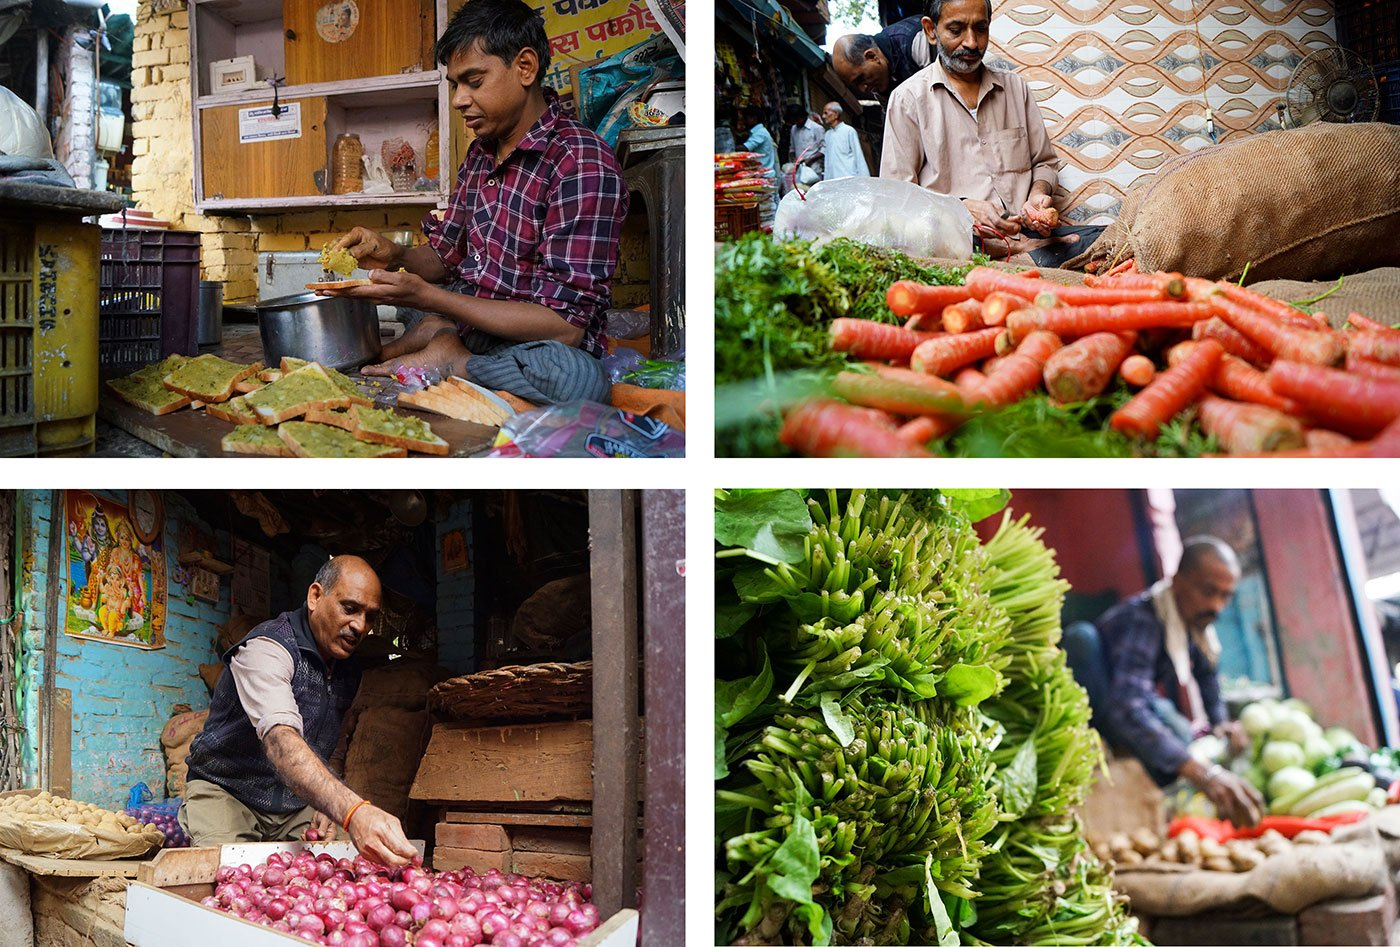 vegetable sellers in Delhi's market